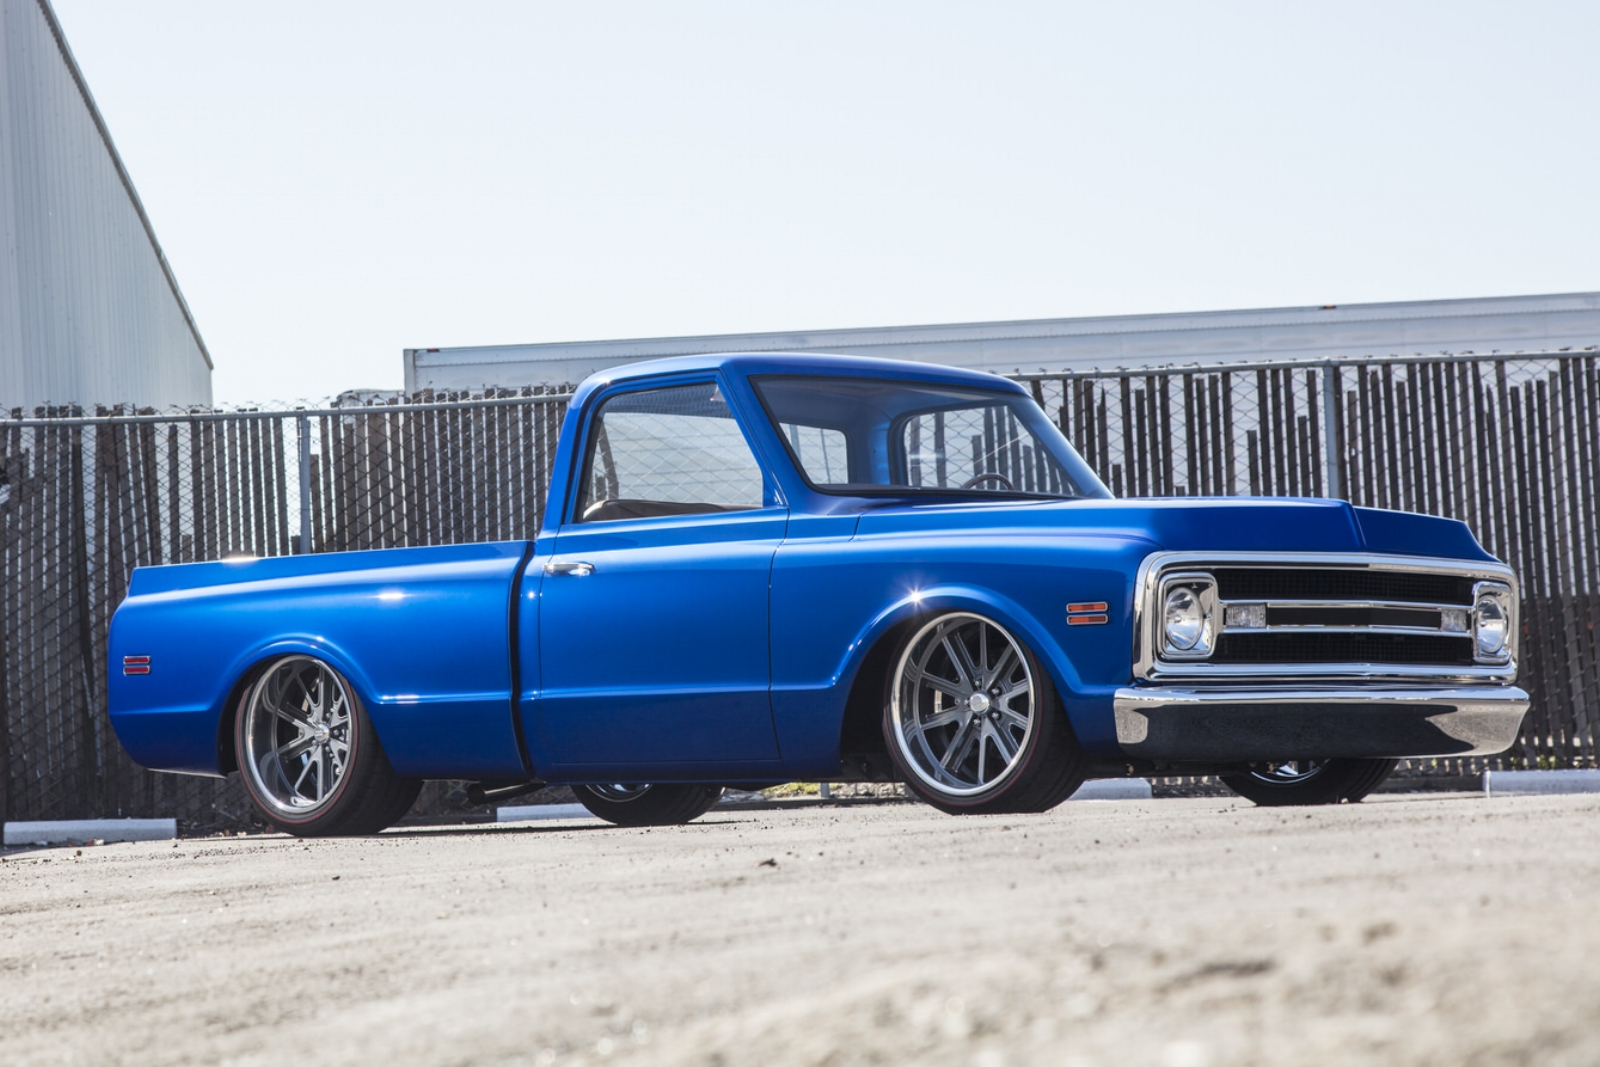 Sean Provost 1970 Chevy C10 Pickup - Photo by Tim Sutton